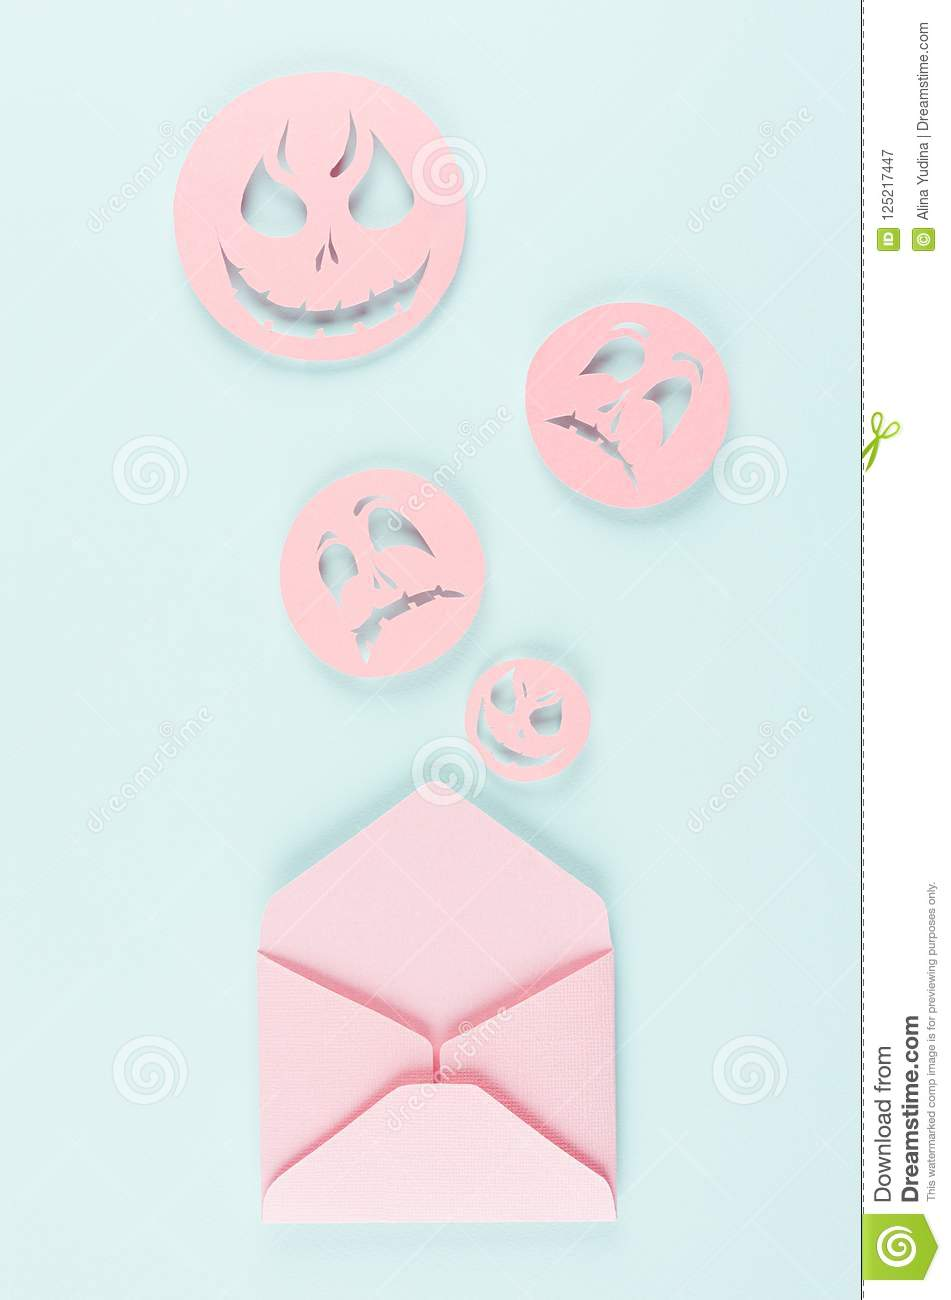 Halloween mock up with open envelope and spooky faces emoji as message of cut paper on pastel trendy mint background.